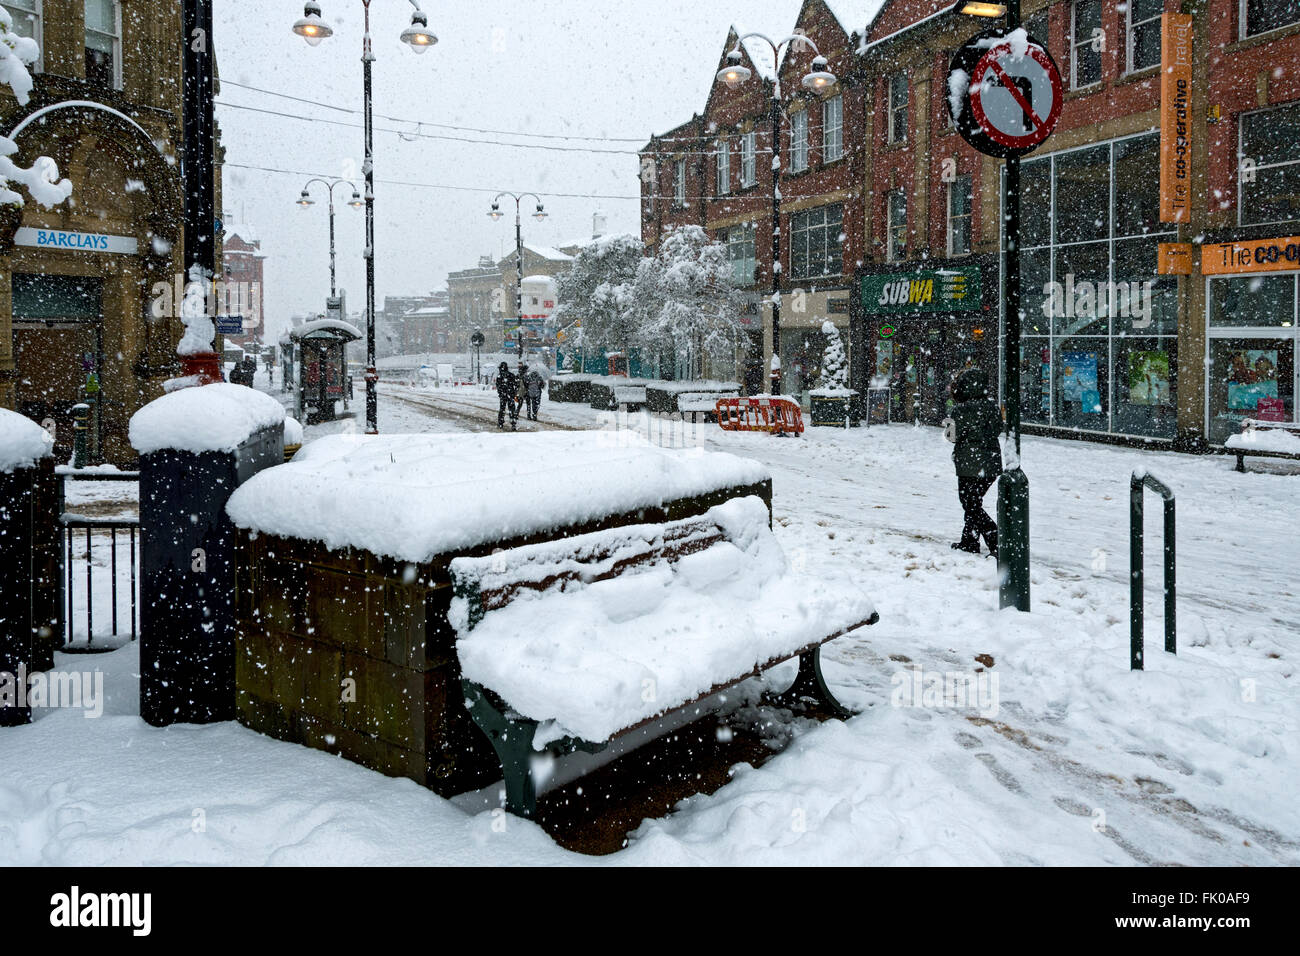 Yorkshire Street, Oldham, in heavy snow.  Oldham town centre, Greater Manchester, England, UK - Stock Image